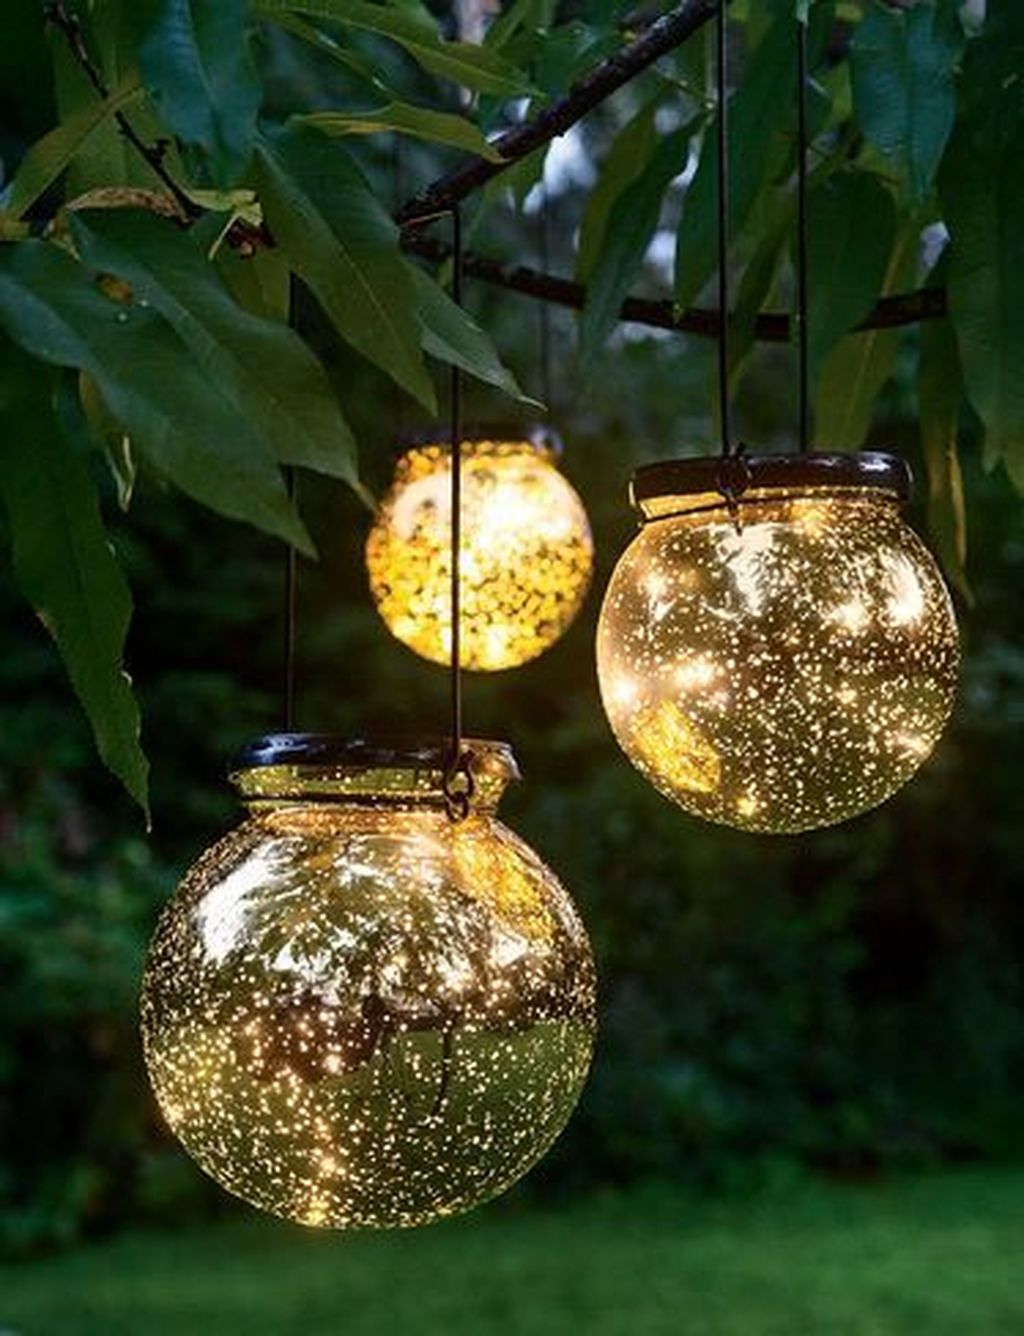 Inspiring Garden Lamps Ideas For Outdoors Decor 18